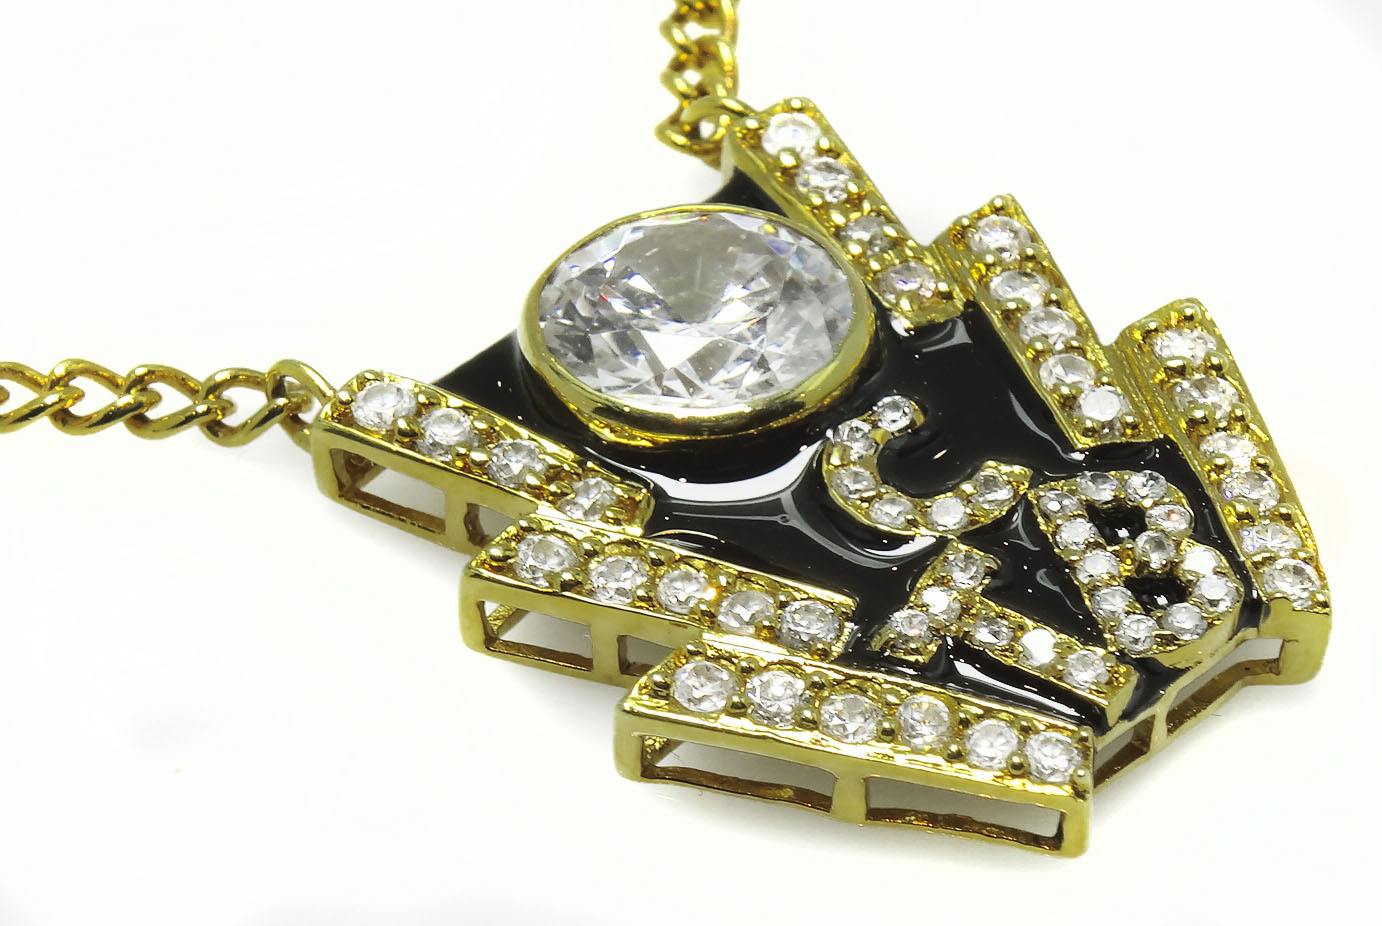 Elvis jewellery large tcb pendant sale mozeypictures Image collections